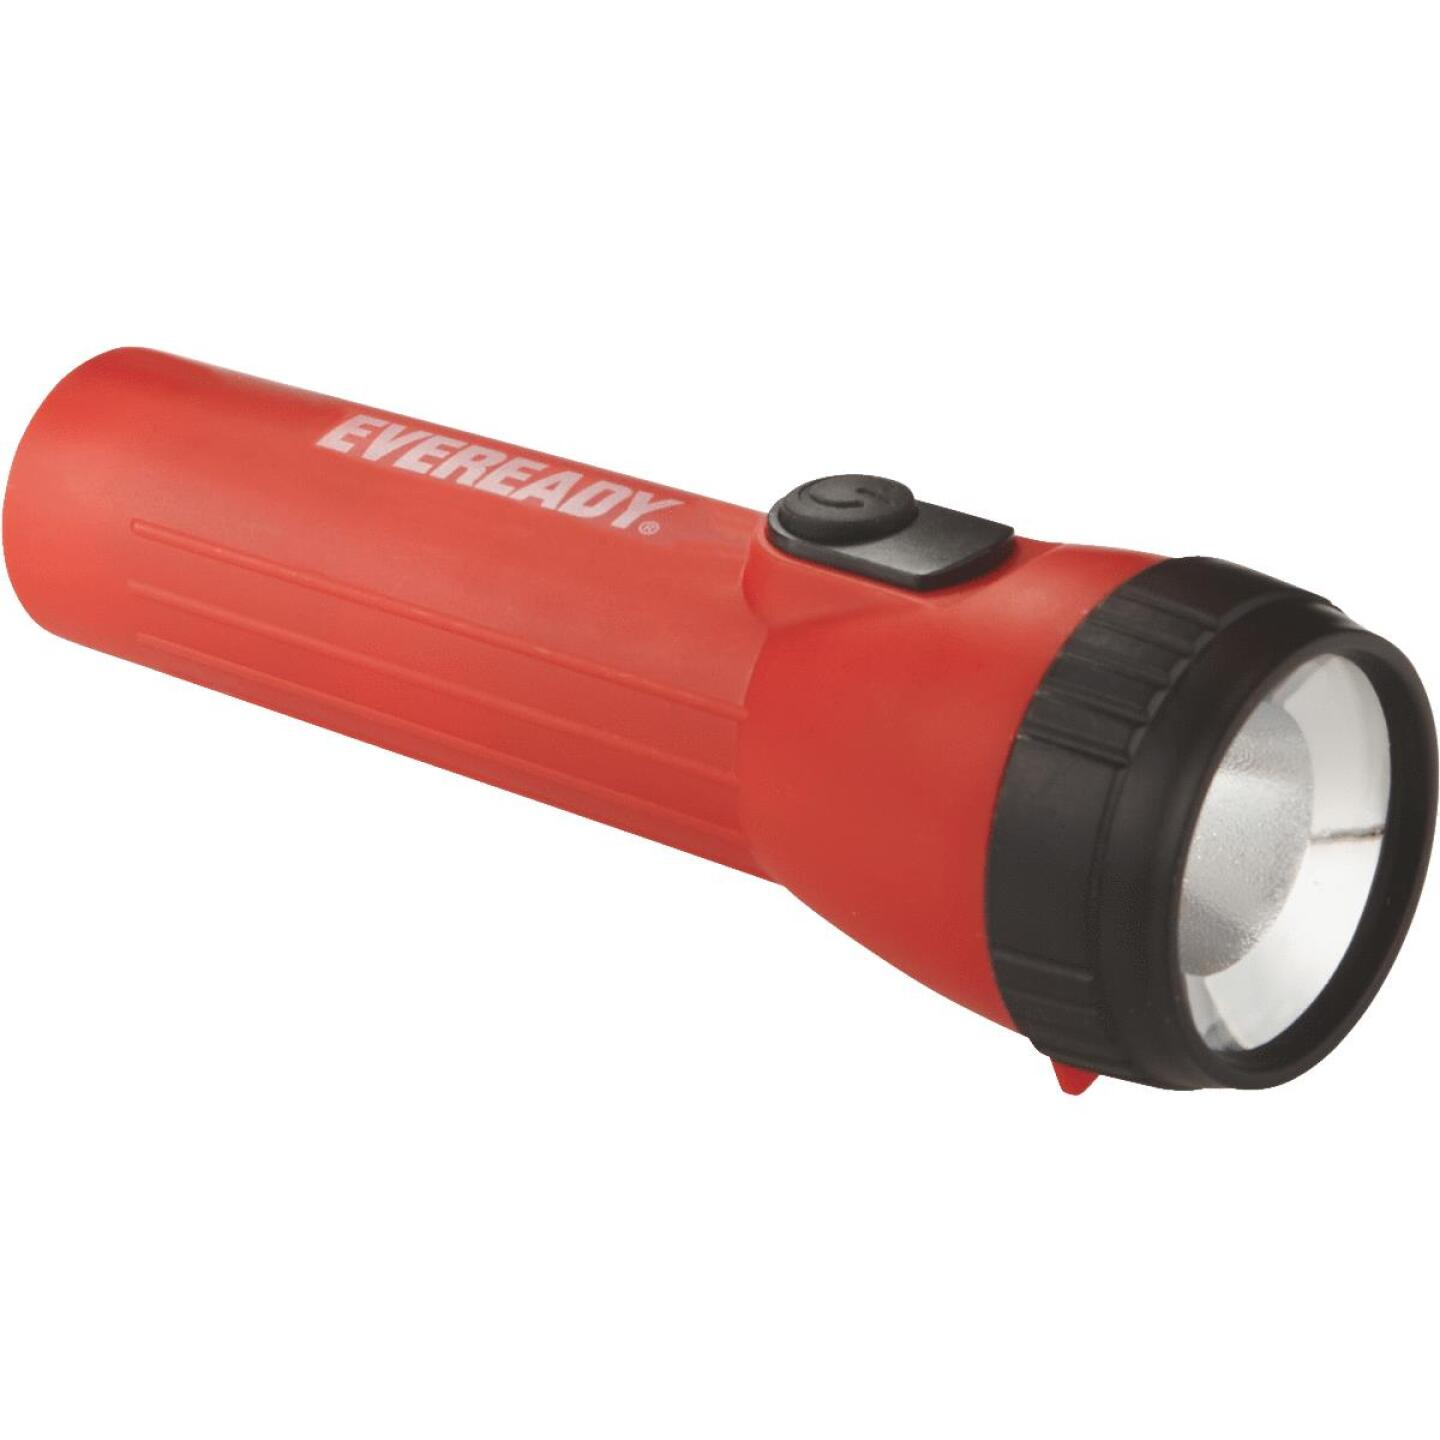 Eveready 25 Lm. LED 2D Flashlight Image 1